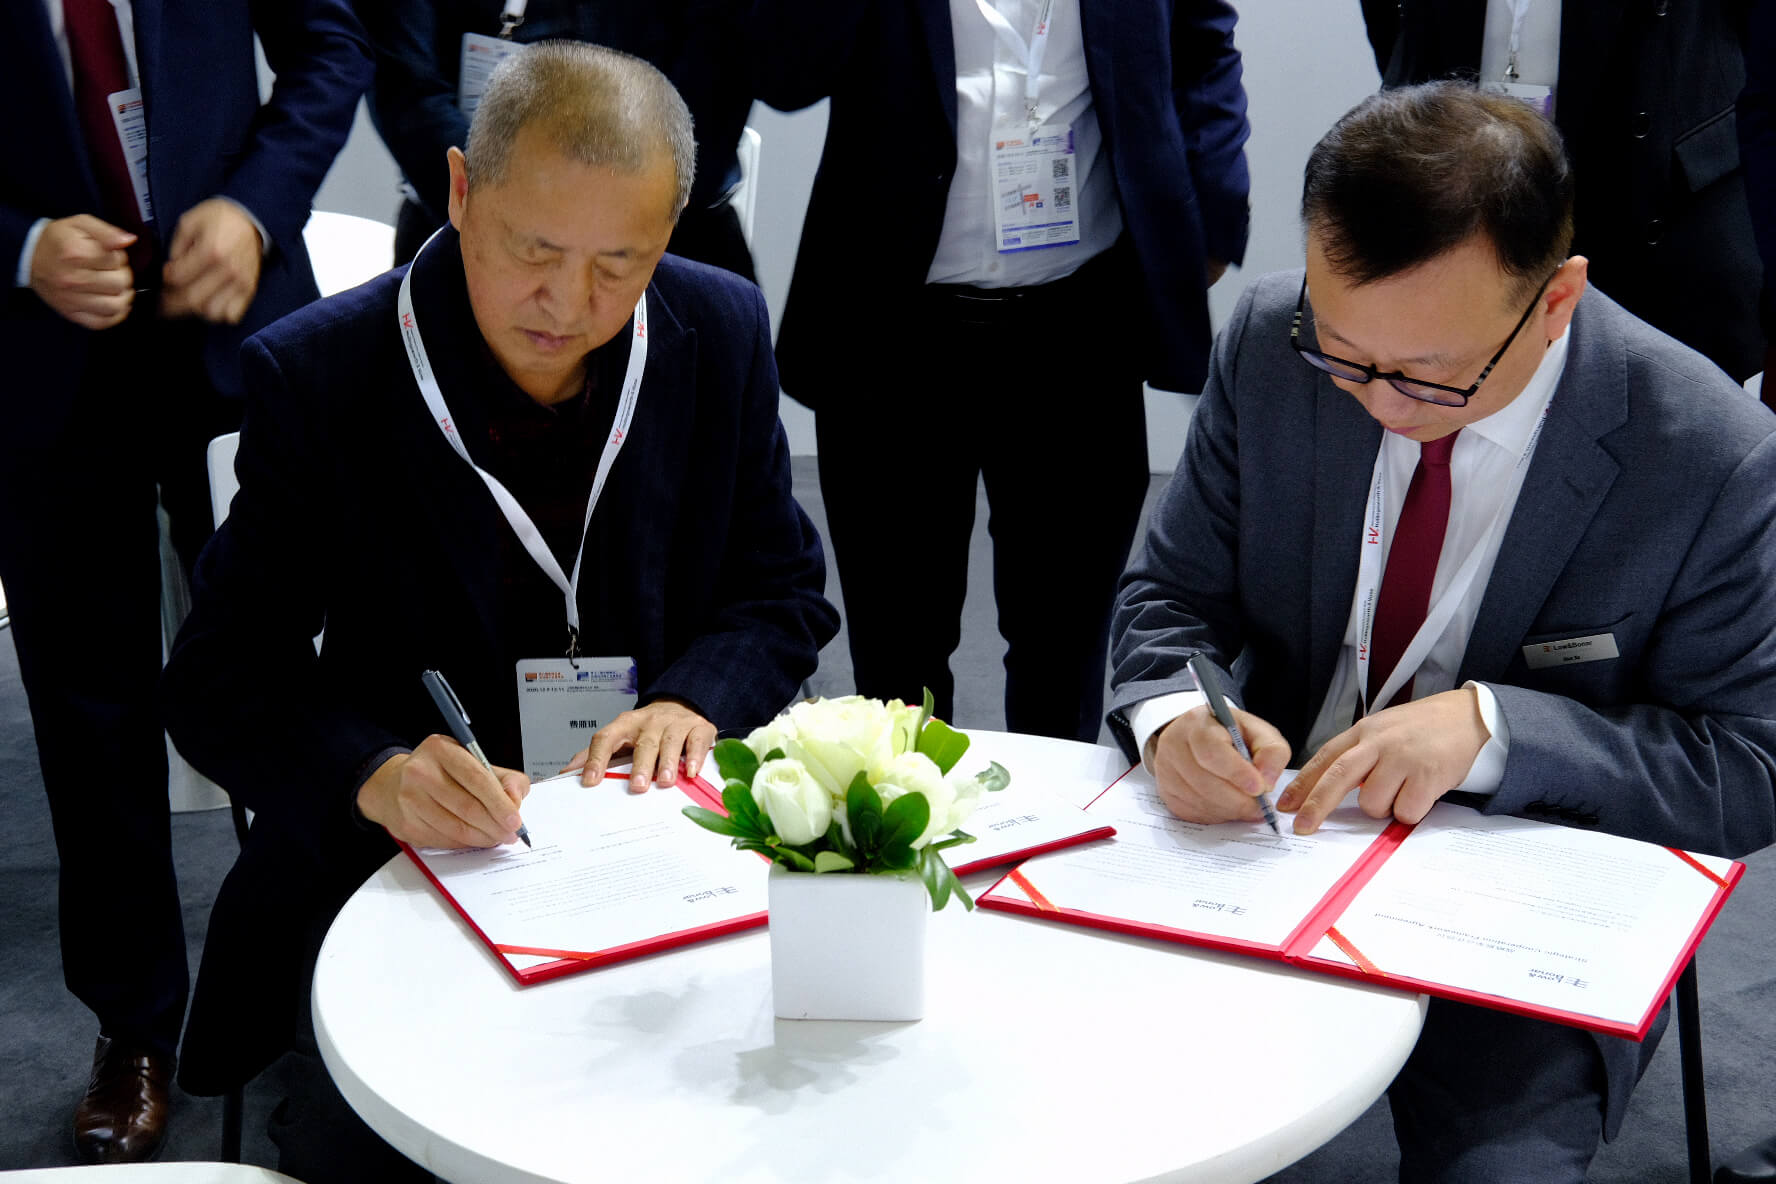 Contract agreement Alex Xu regional director Asia Pacific Low & Bonar & Shenzhen Jingneng New Material Co. Ltd Leadership